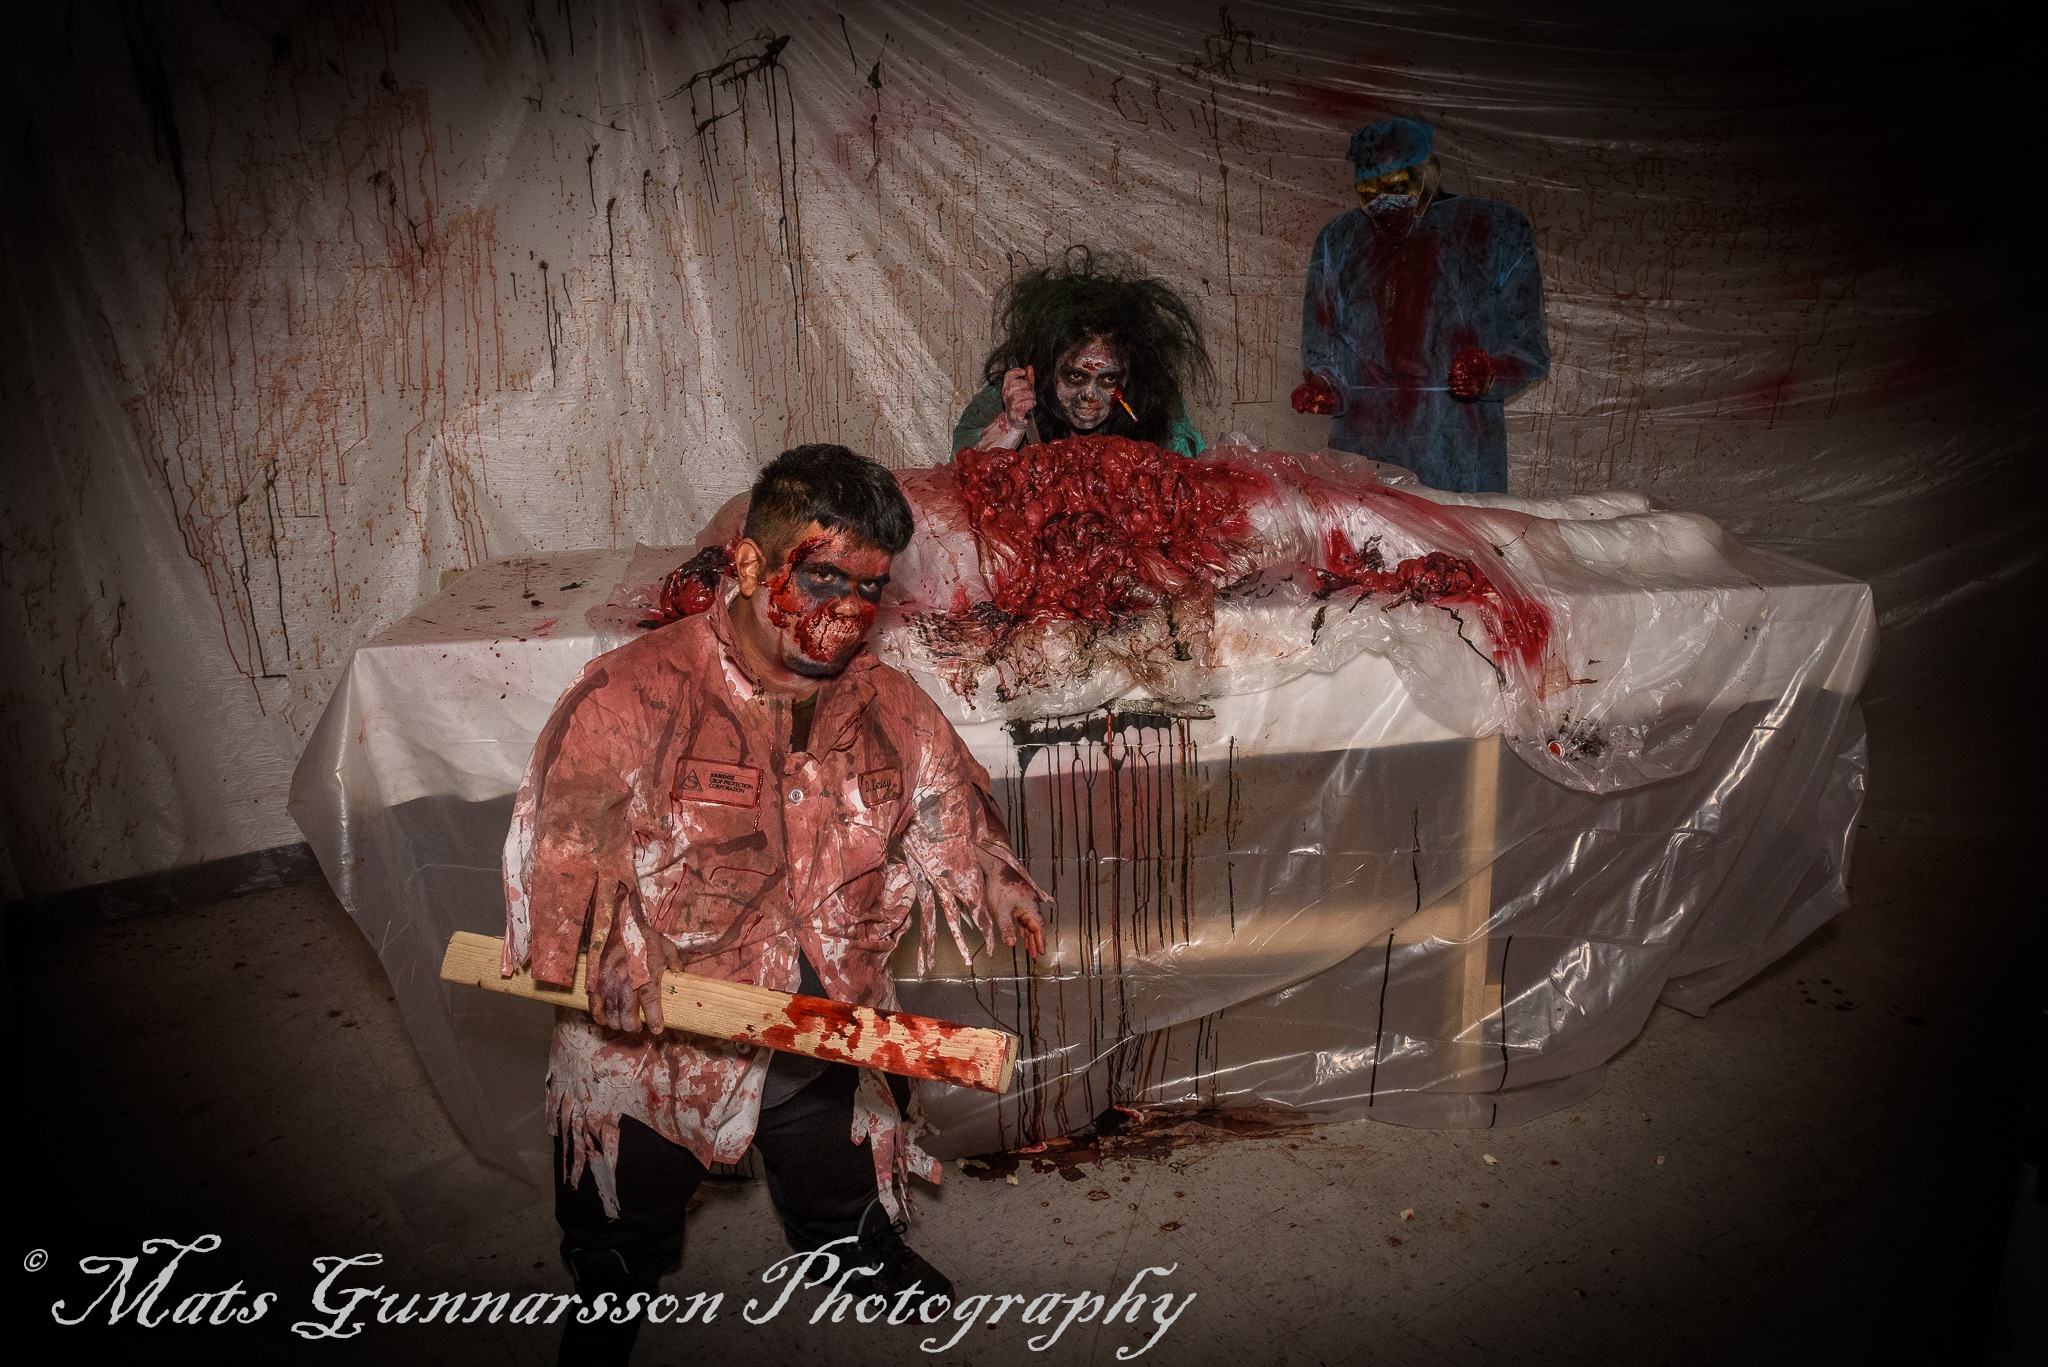 Zombie Haunted House, San Jose, CA by MatsGunnarssonPhotography